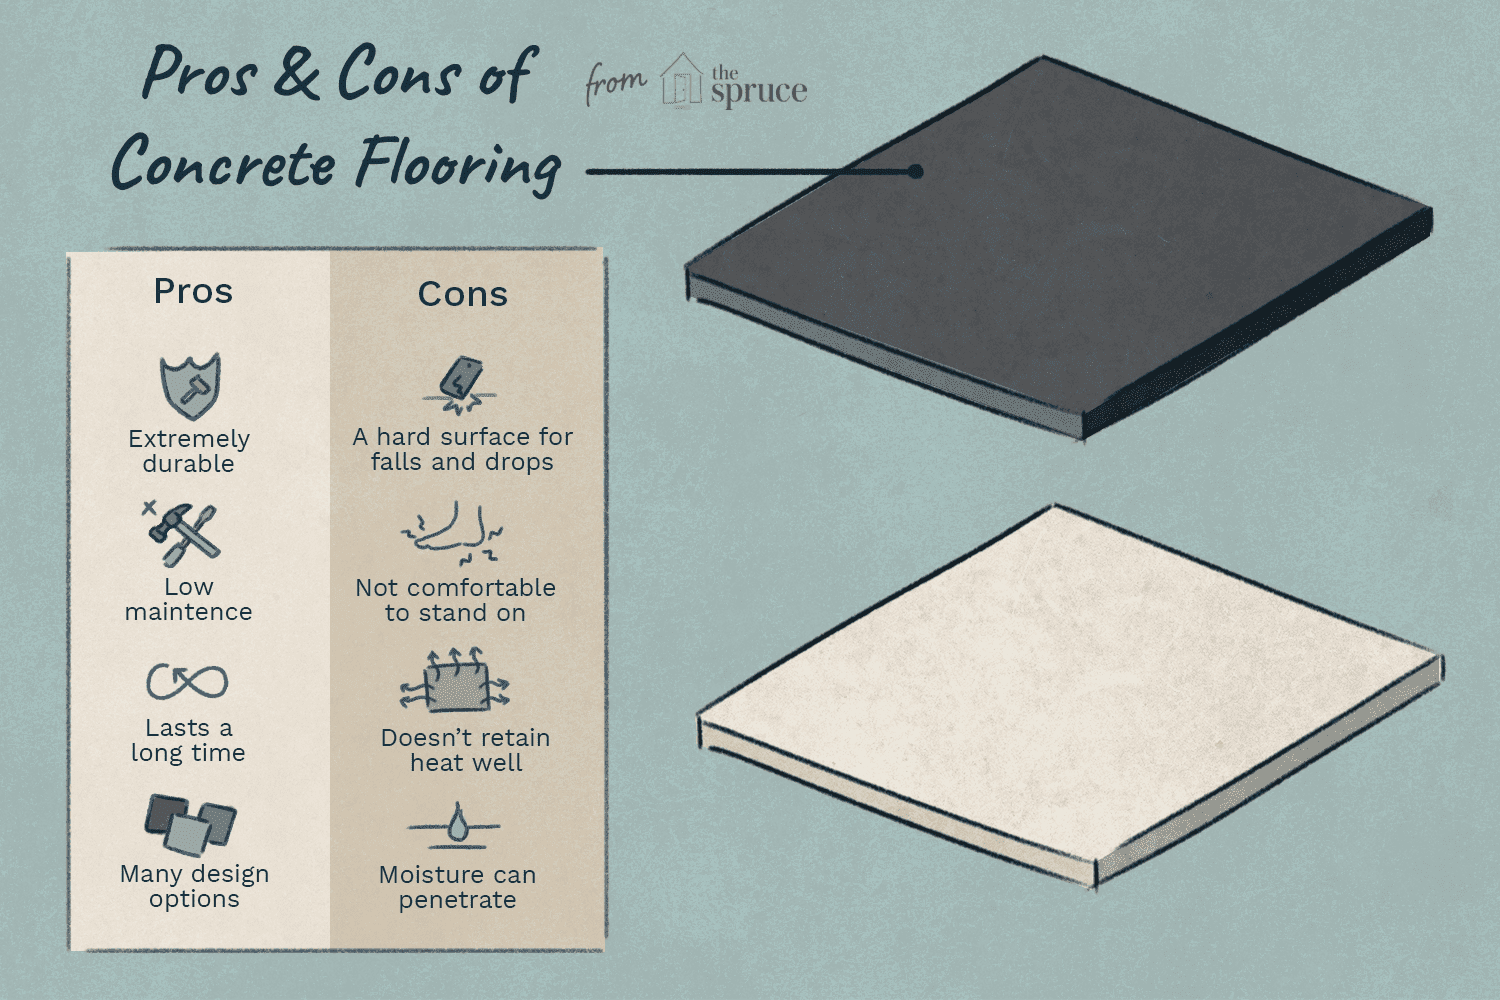 43ebf097d5 Pros and cons of concrete flooring diagram